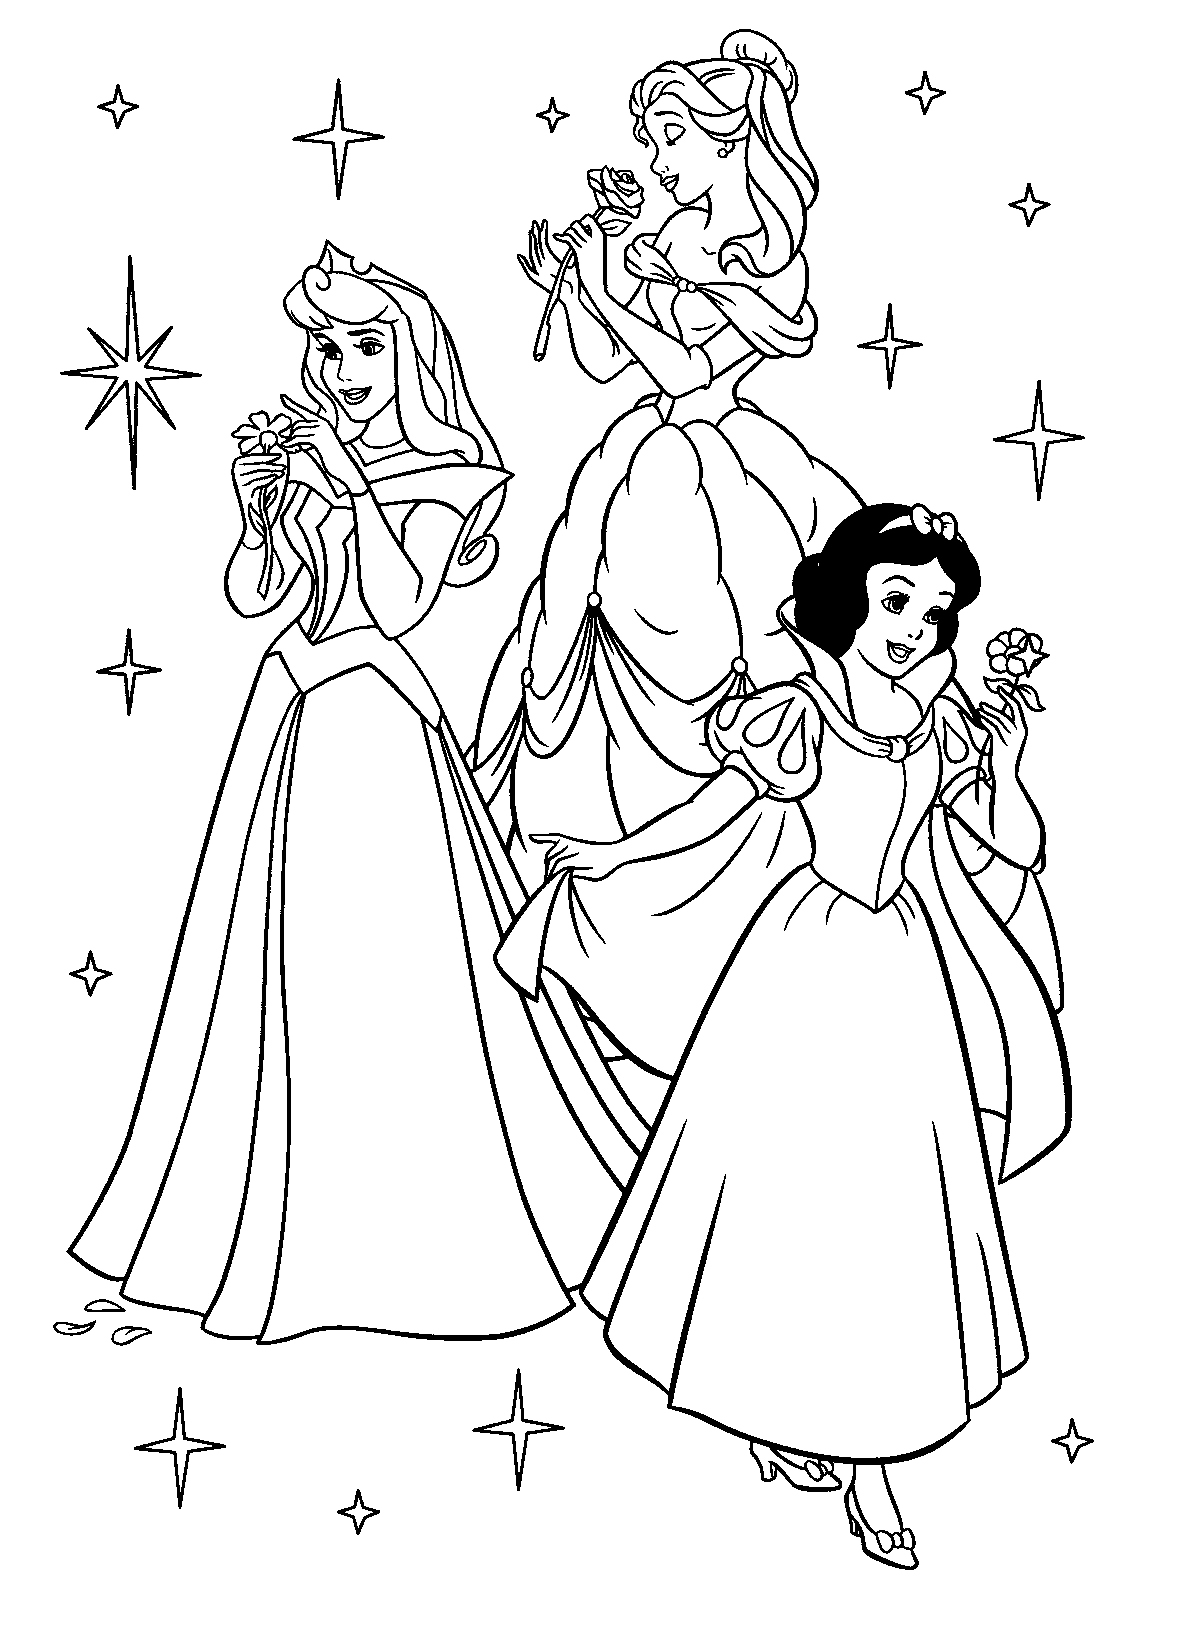 prncess coloring pages - photo#13